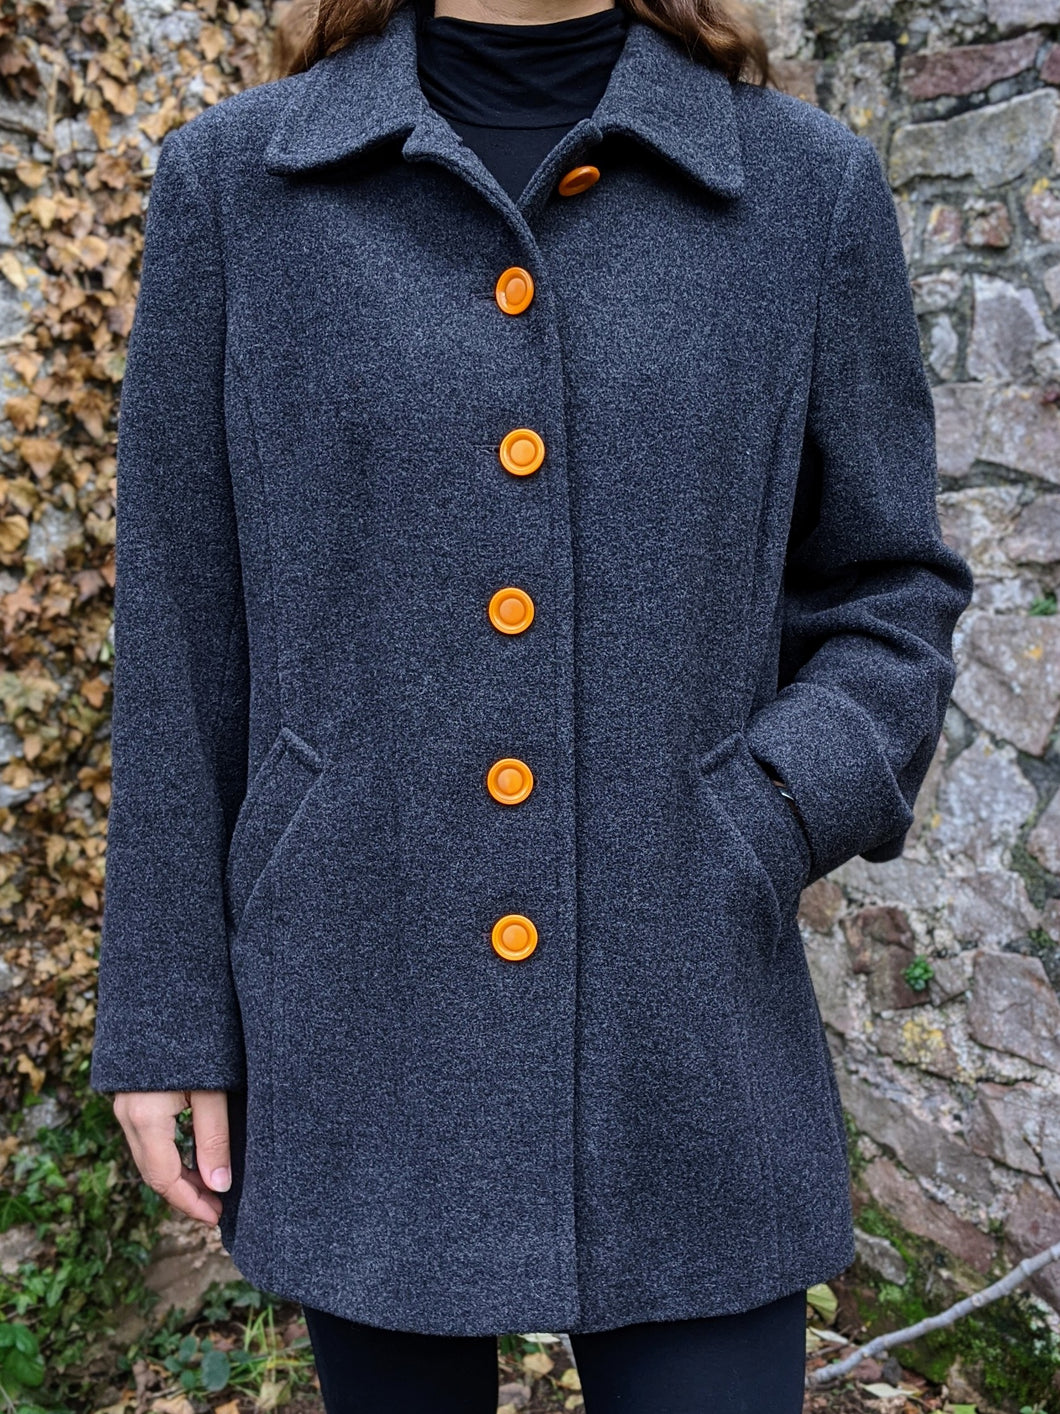 ** SOLD ** Vintage Dark Grey Wool Coat with Orange Statement Buttons